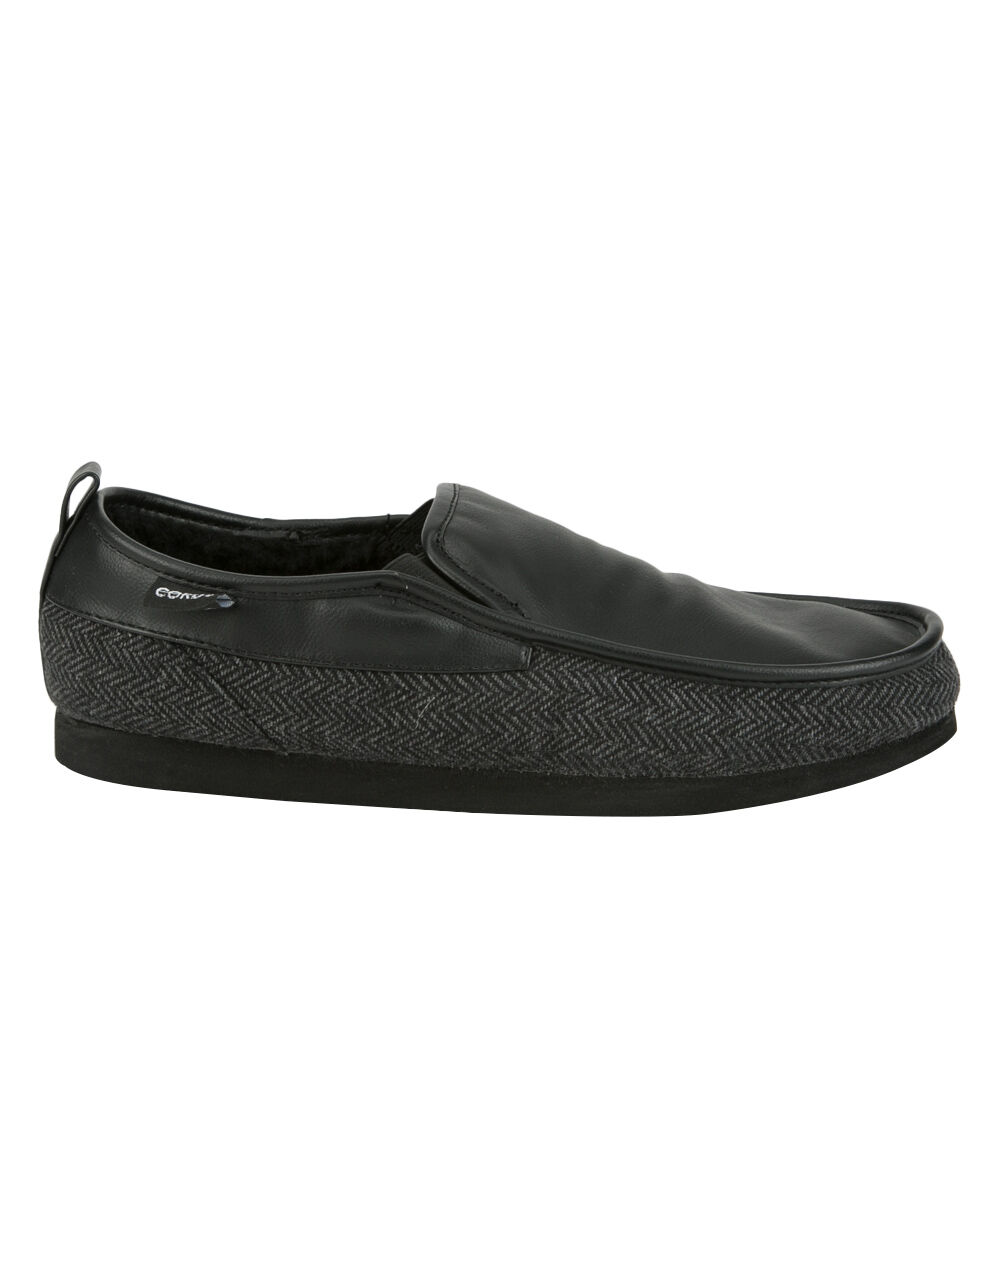 CORDS STERLING SLIPPERS